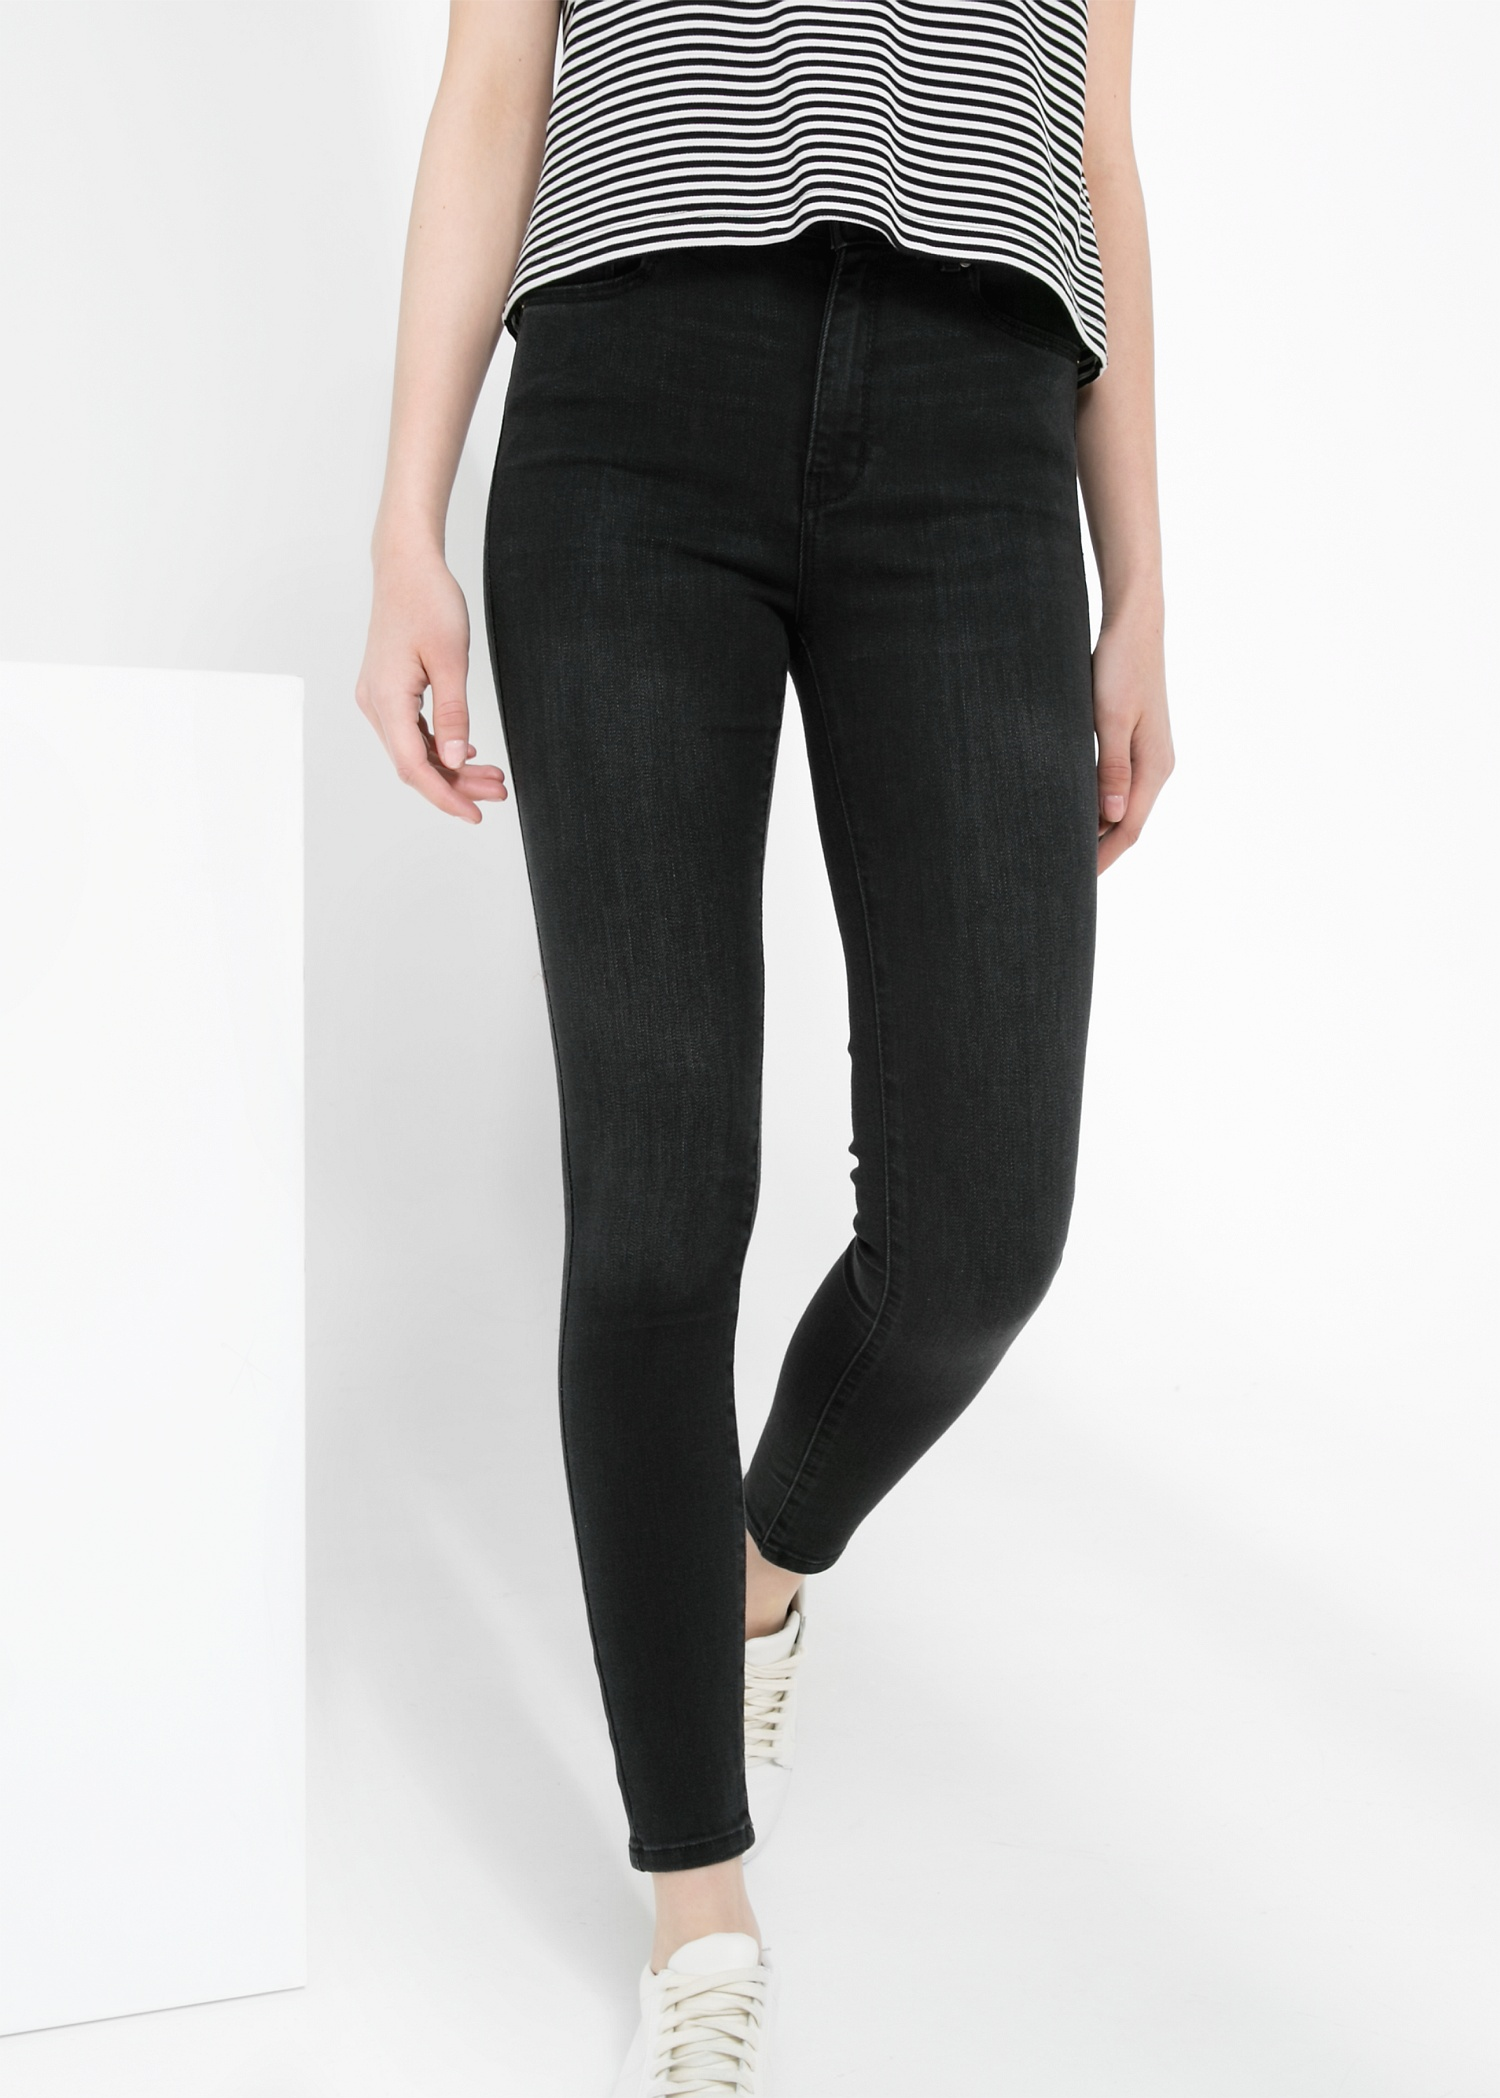 High waist broadway jeans - Jeans for Women | MANGO